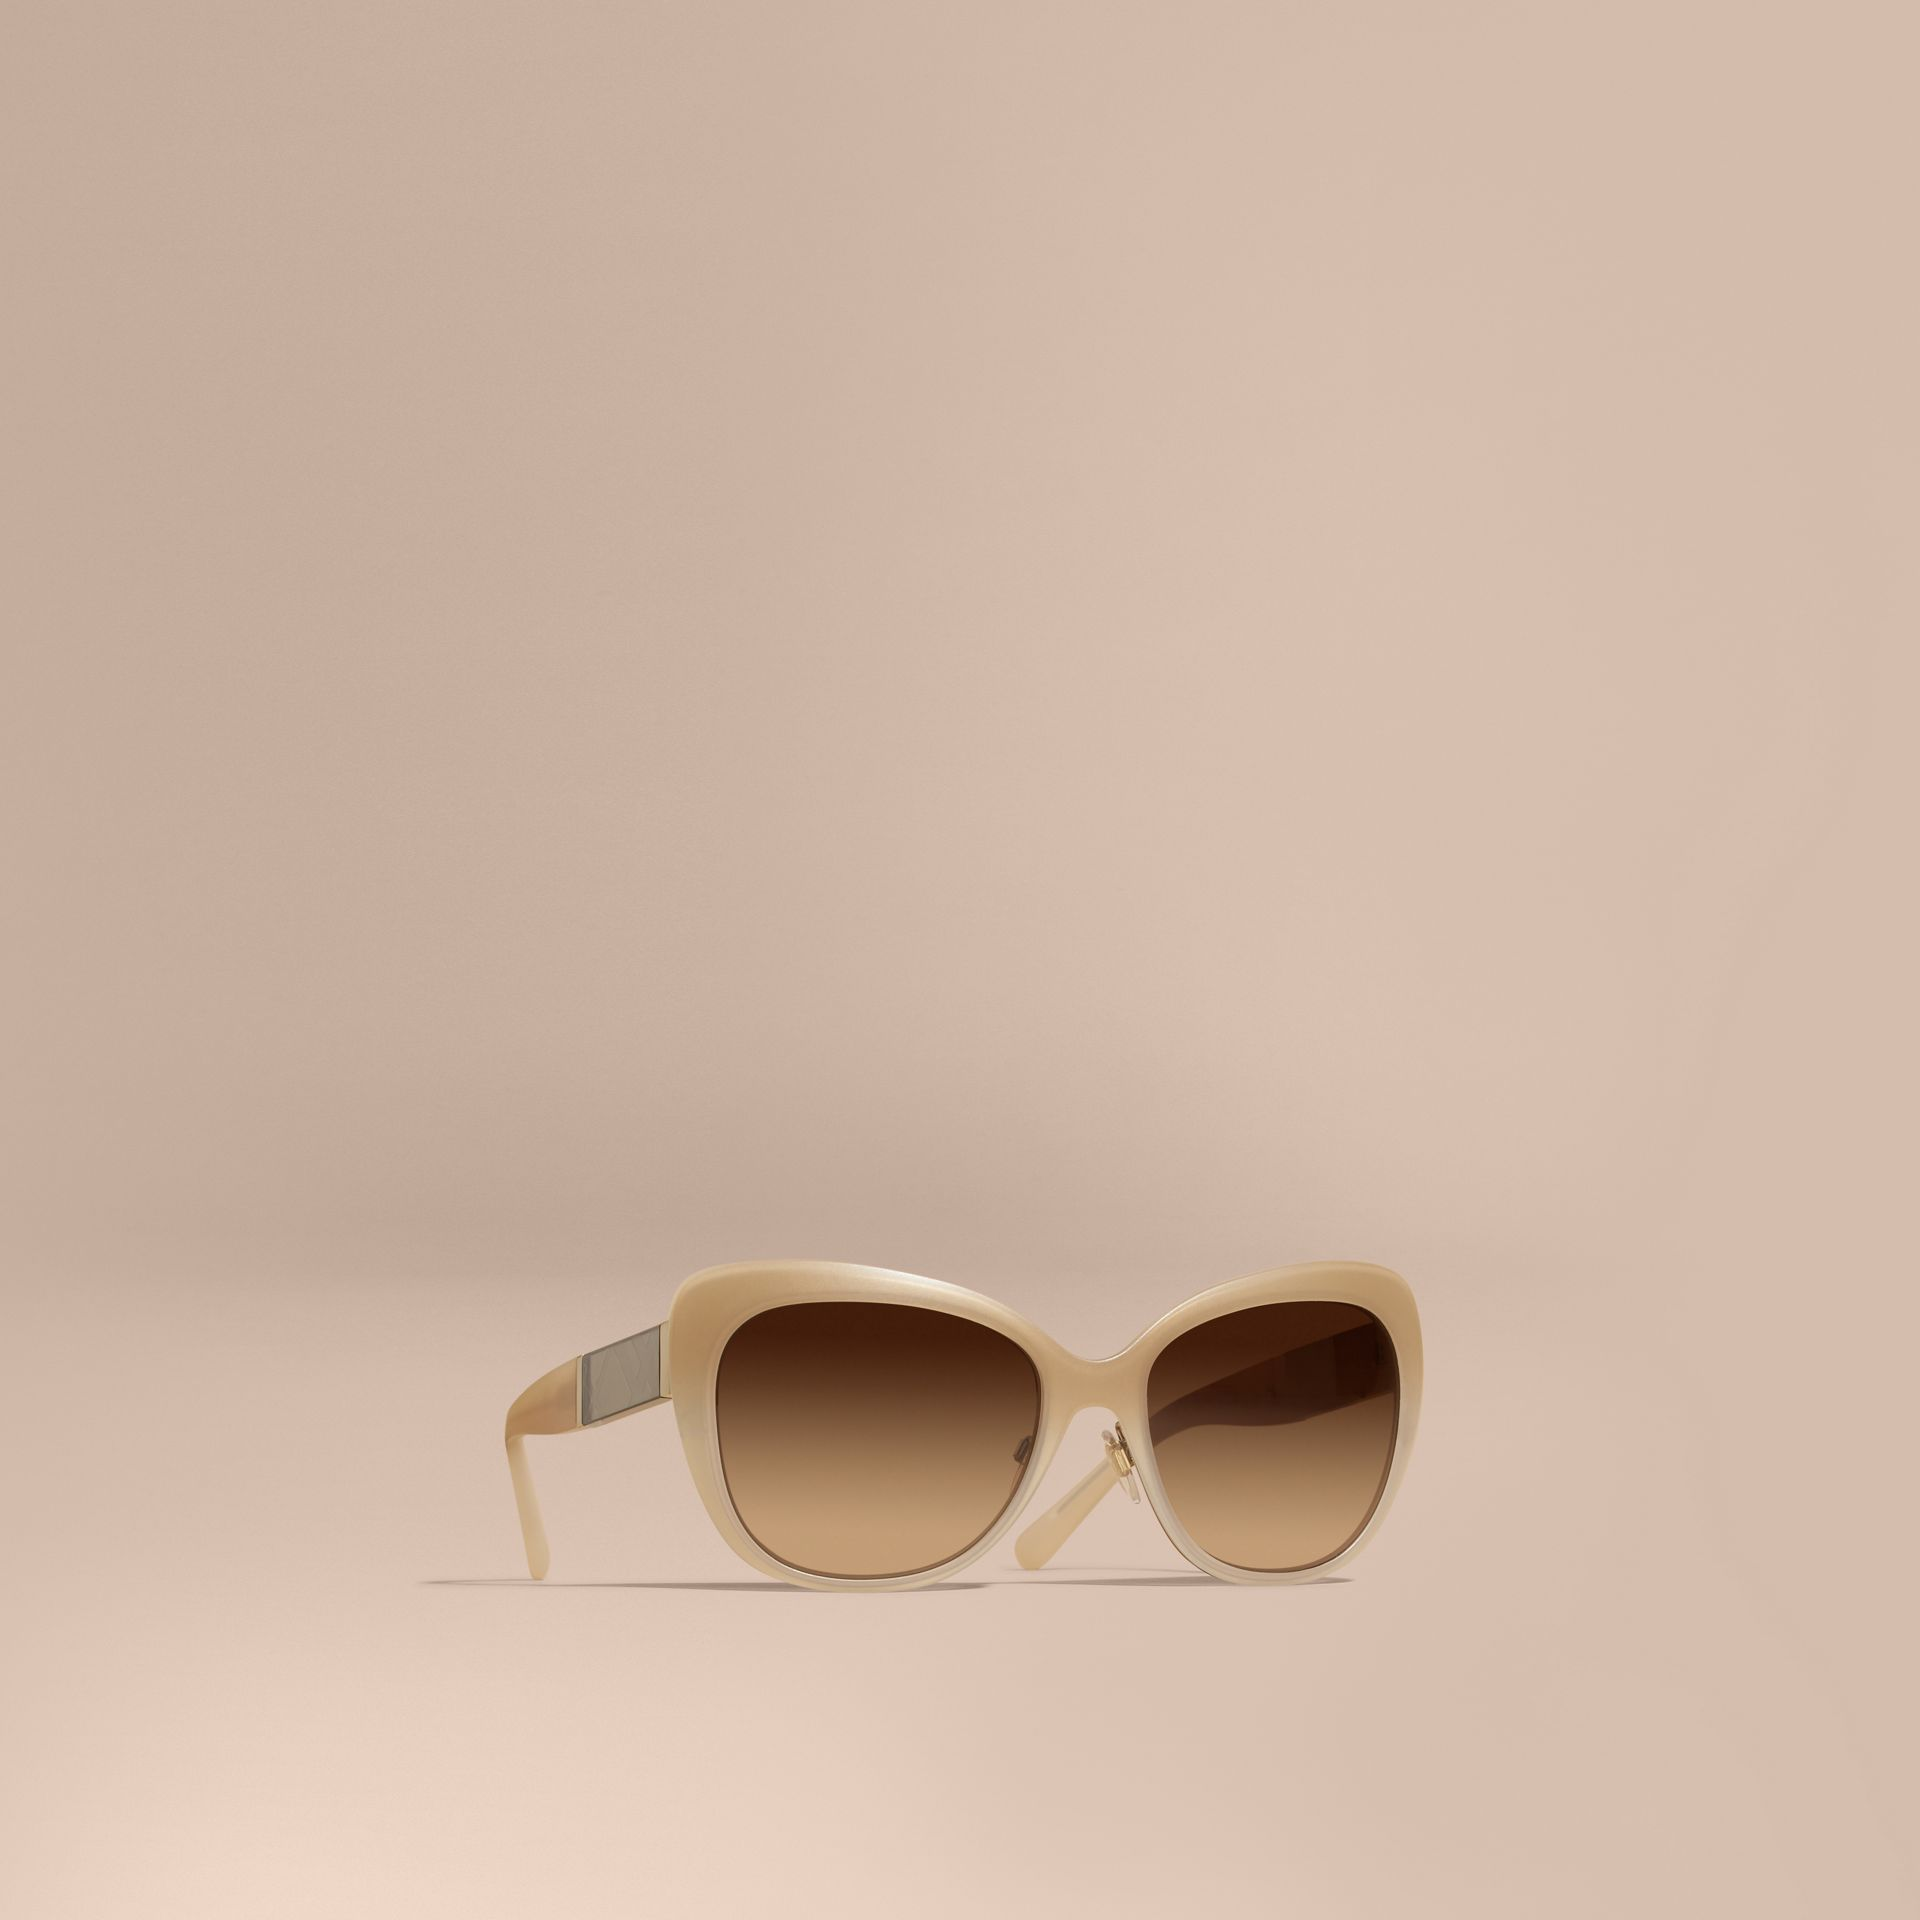 Chino grey Check Detail Square Cat-eye Sunglasses Chino Grey - gallery image 1